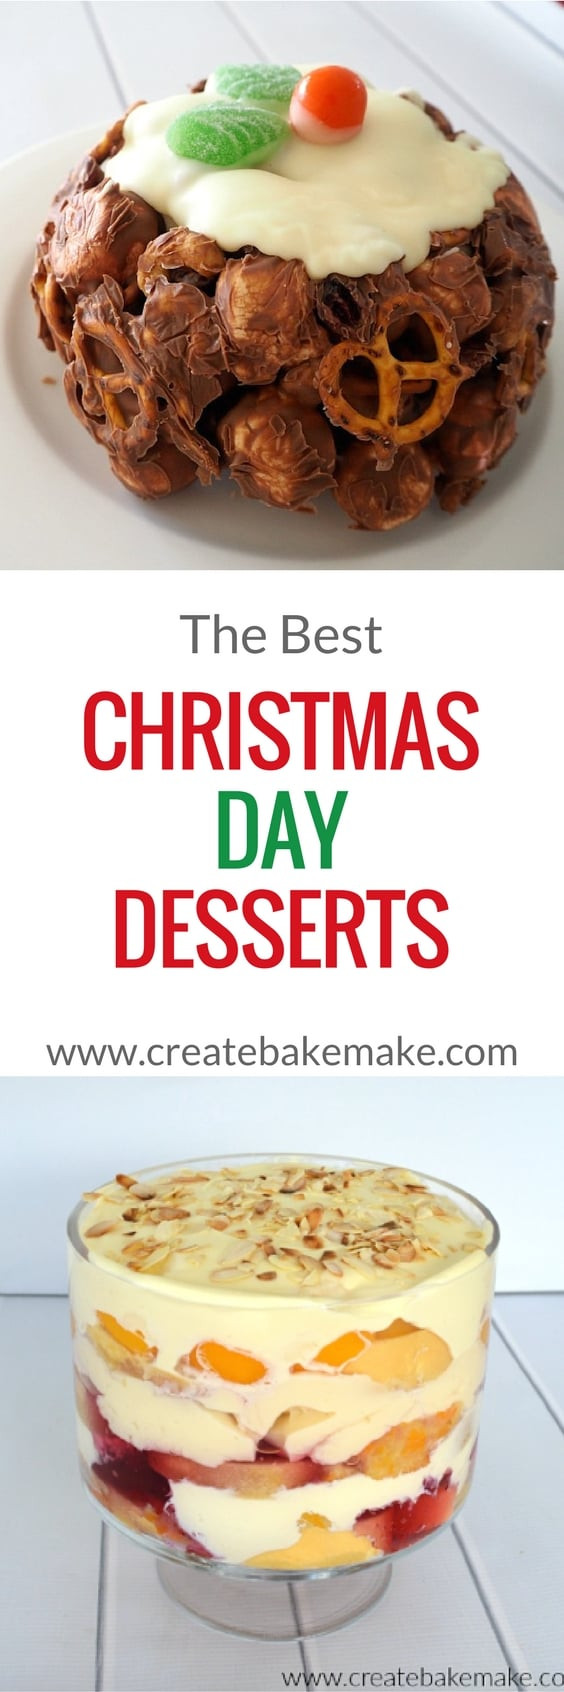 The Best Christmas Desserts  The Best Christmas Day Desserts Create Bake Make